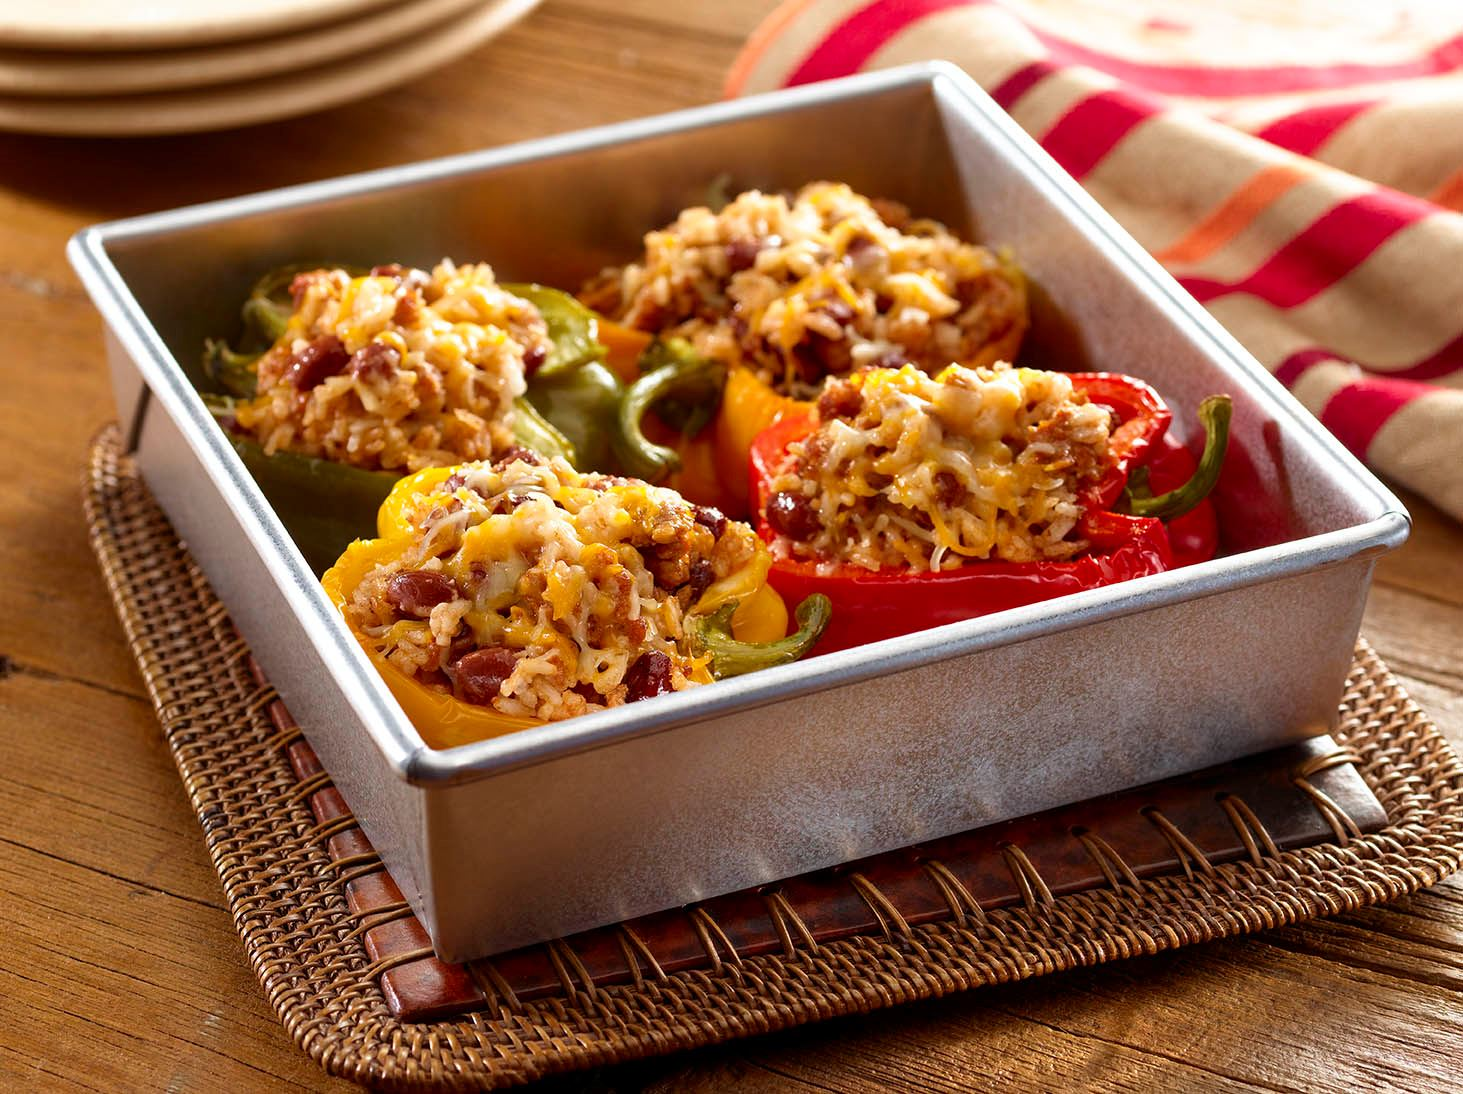 Stuffed Peppers with Rice, Red Beans and Cheese